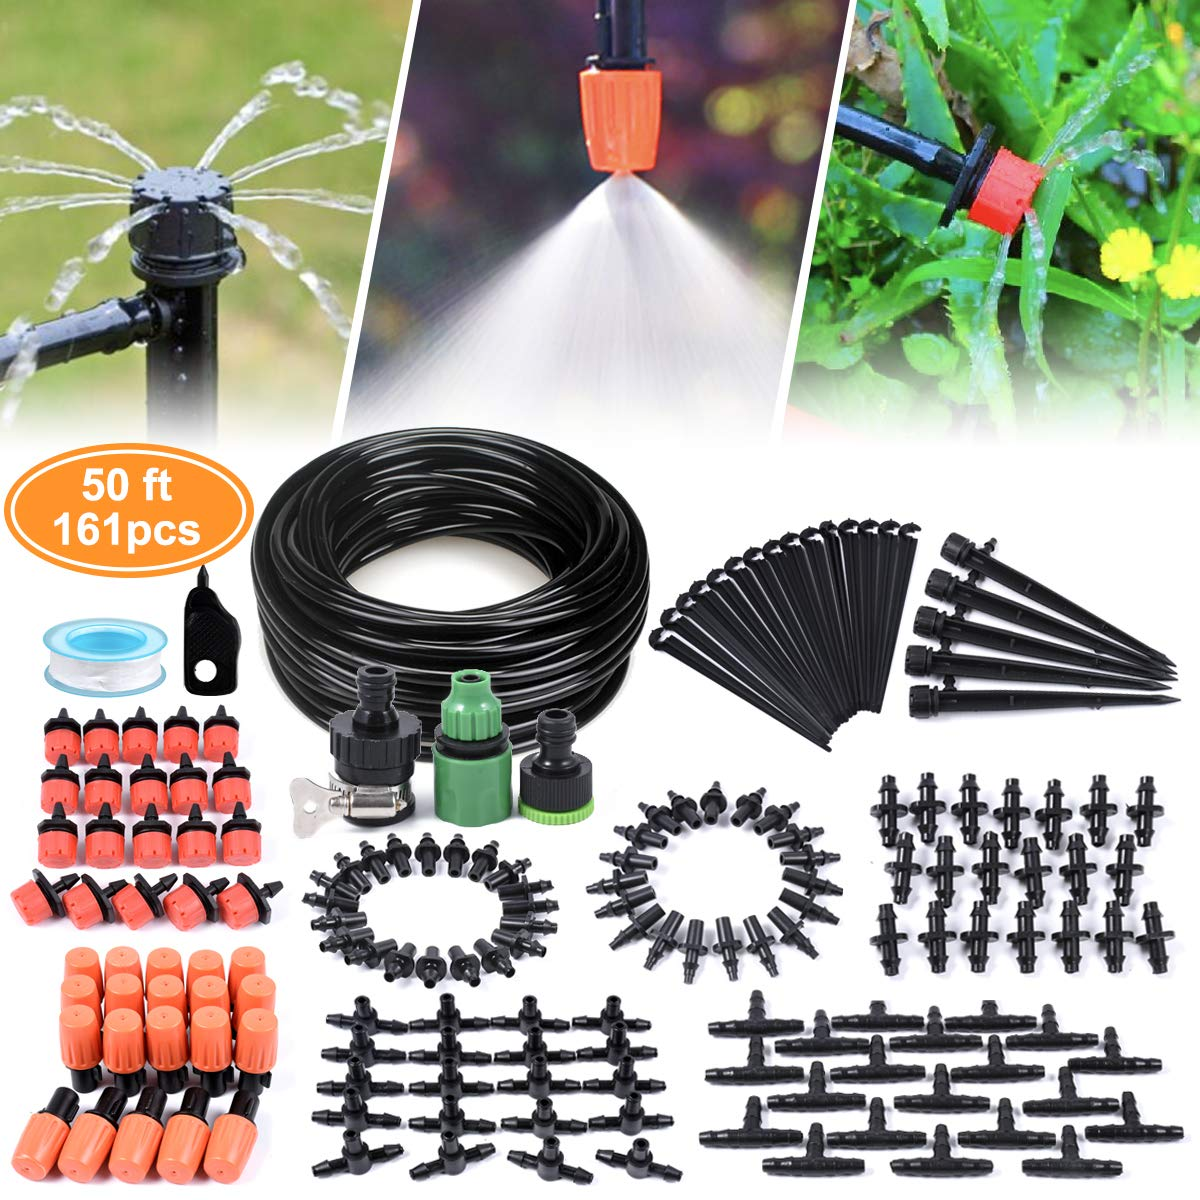 Landrip Micro Drip Irrigation Kit